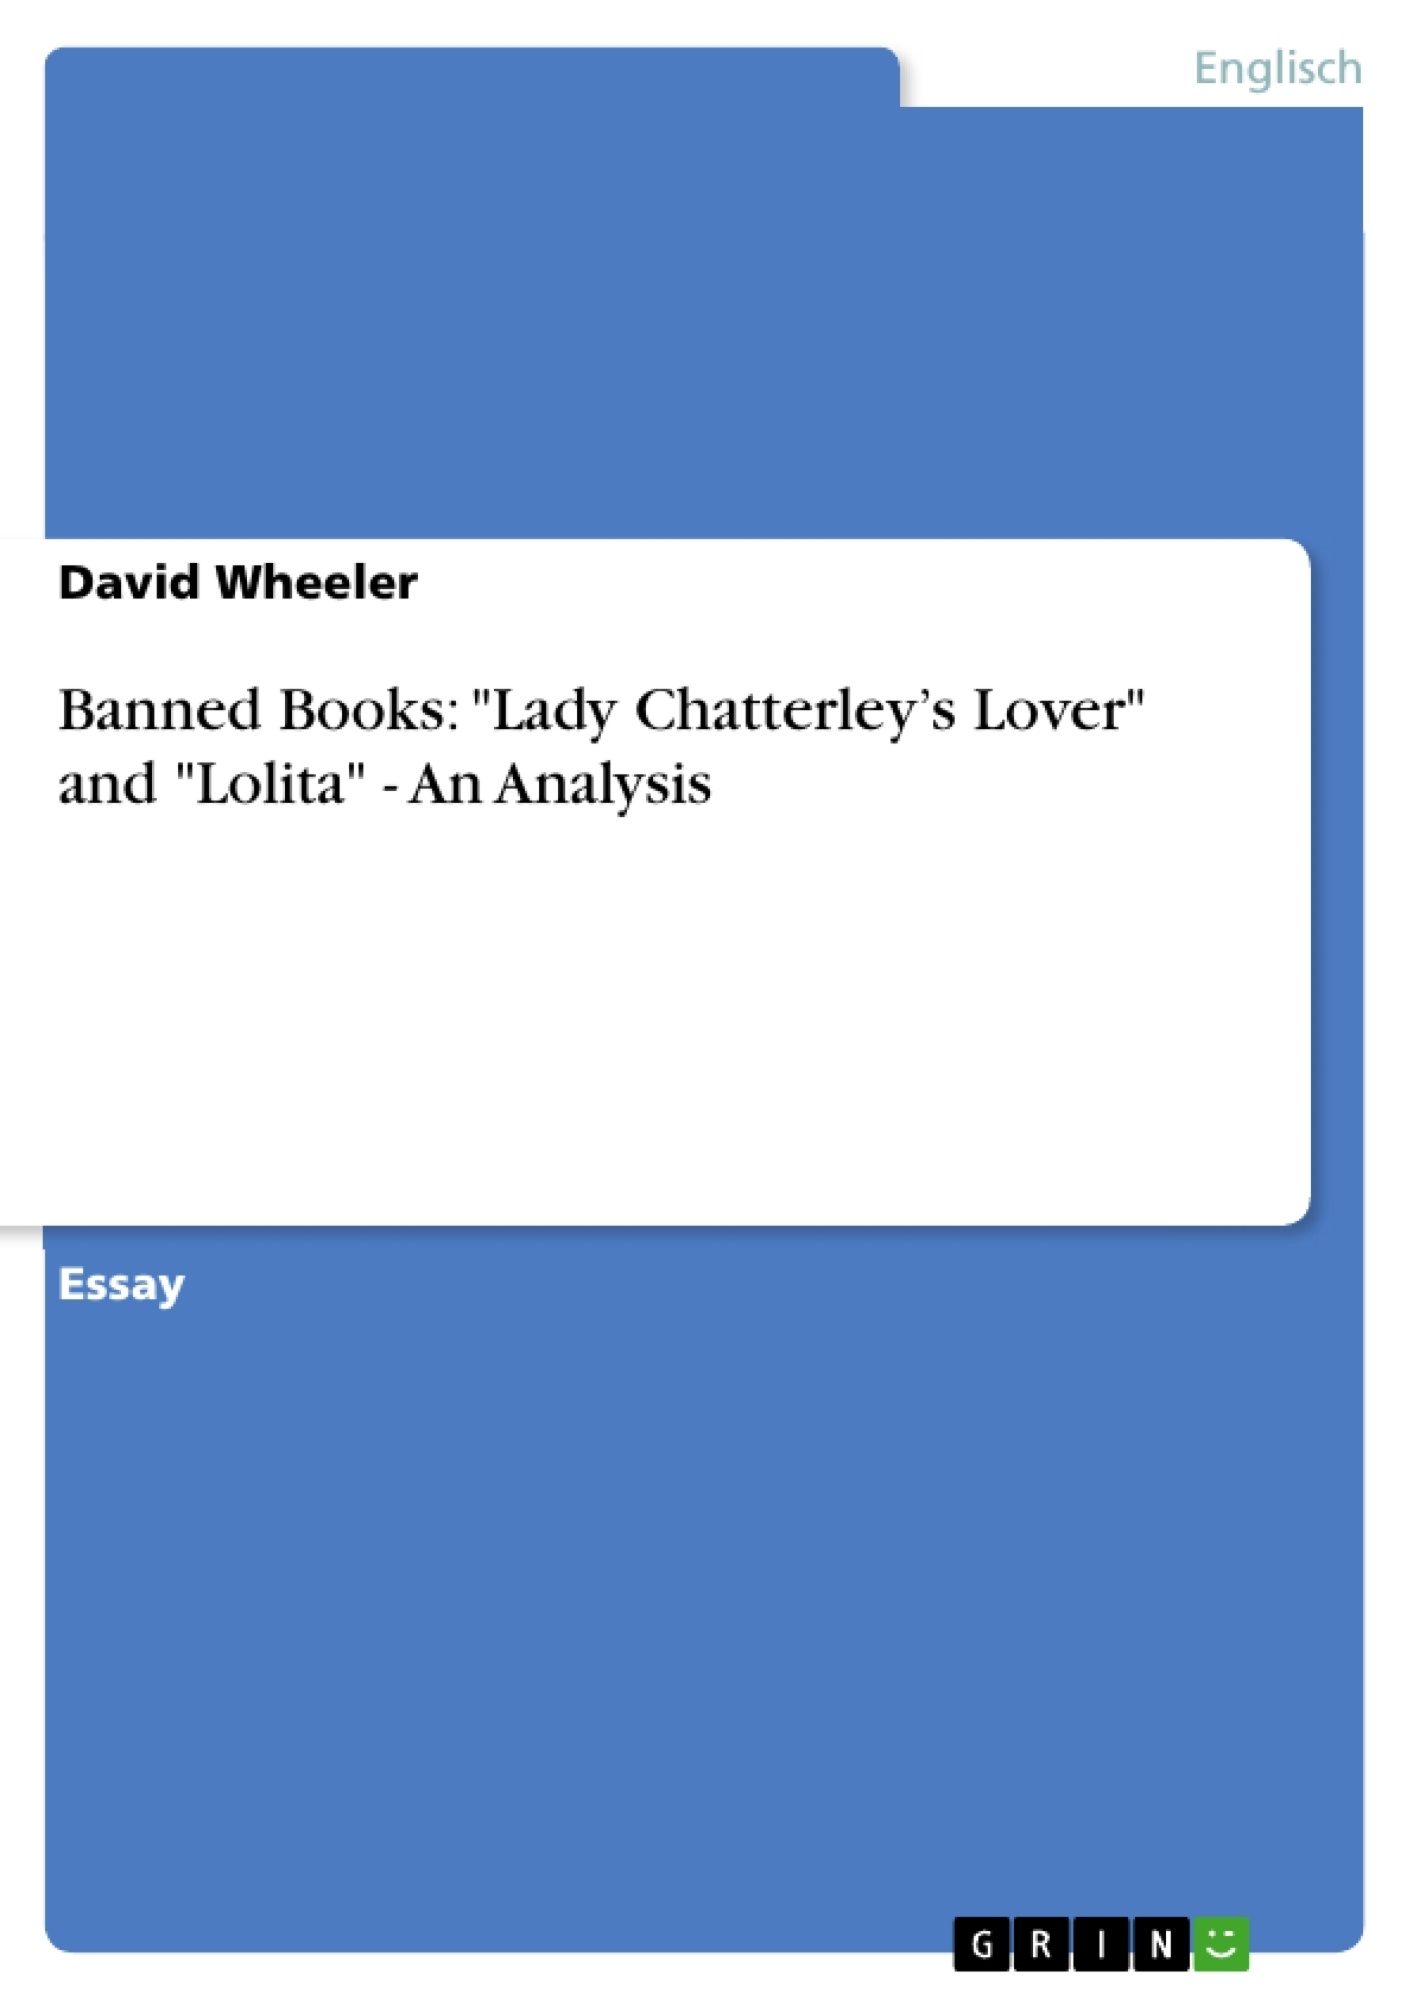 """Titel: Banned Books: """"Lady Chatterley's Lover"""" and """"Lolita"""" - An Analysis"""